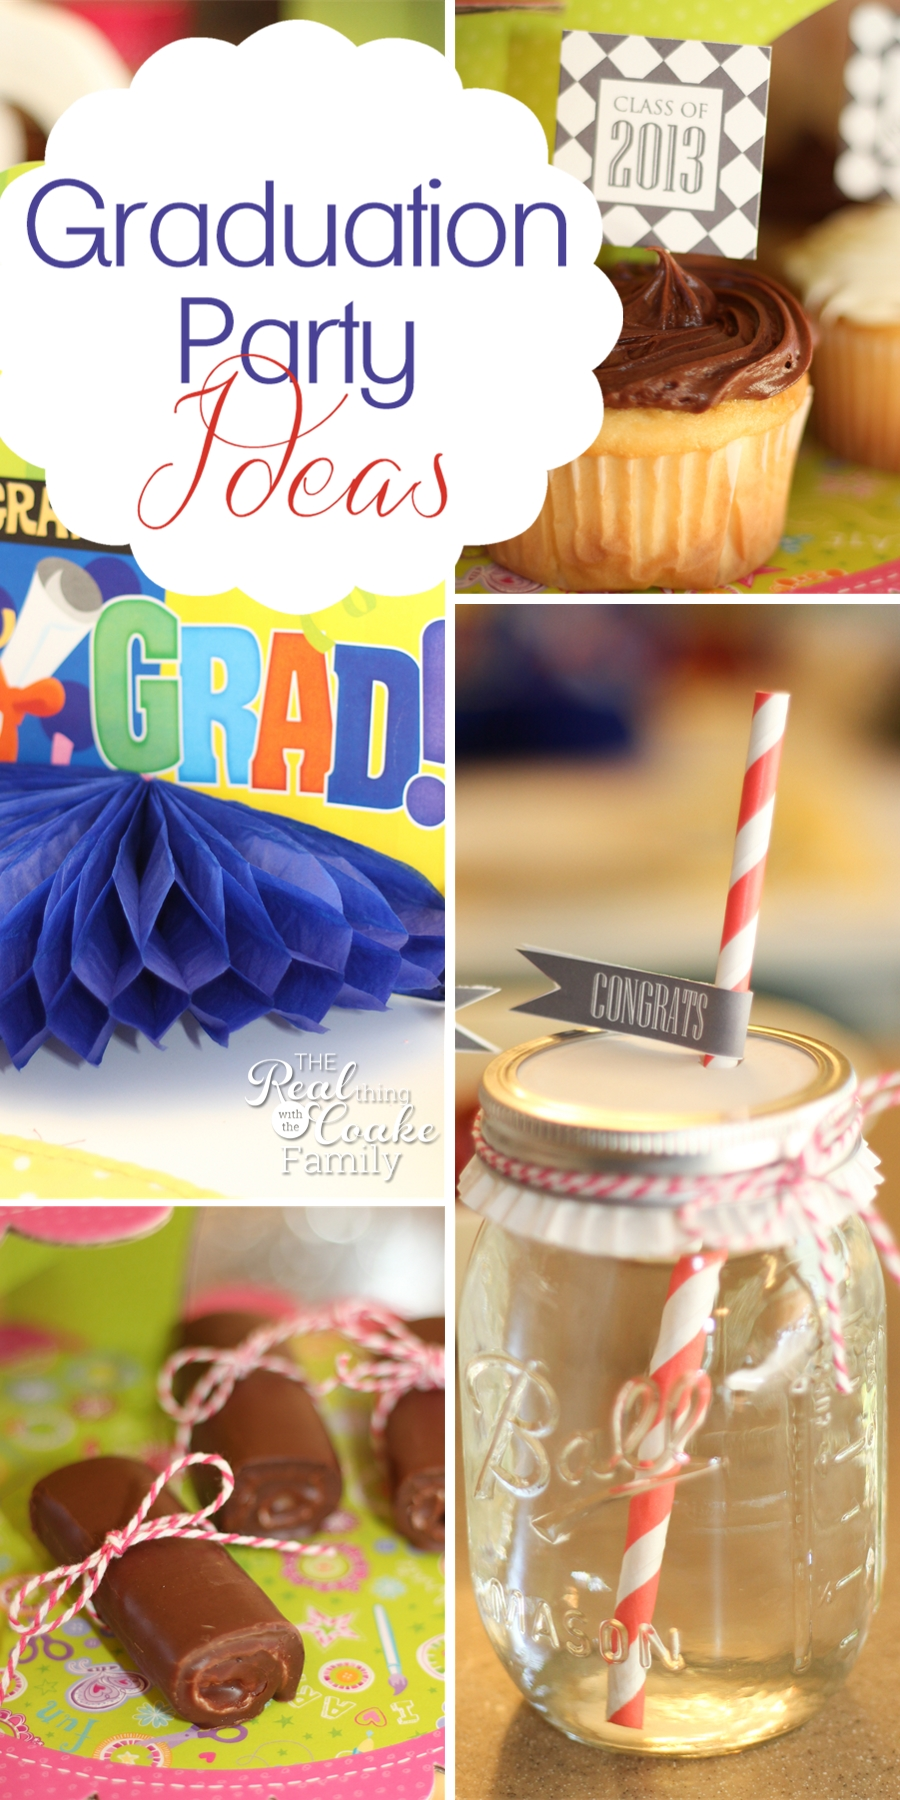 Quick, Easy and Cute Graduation Party Ideas » The Real ...